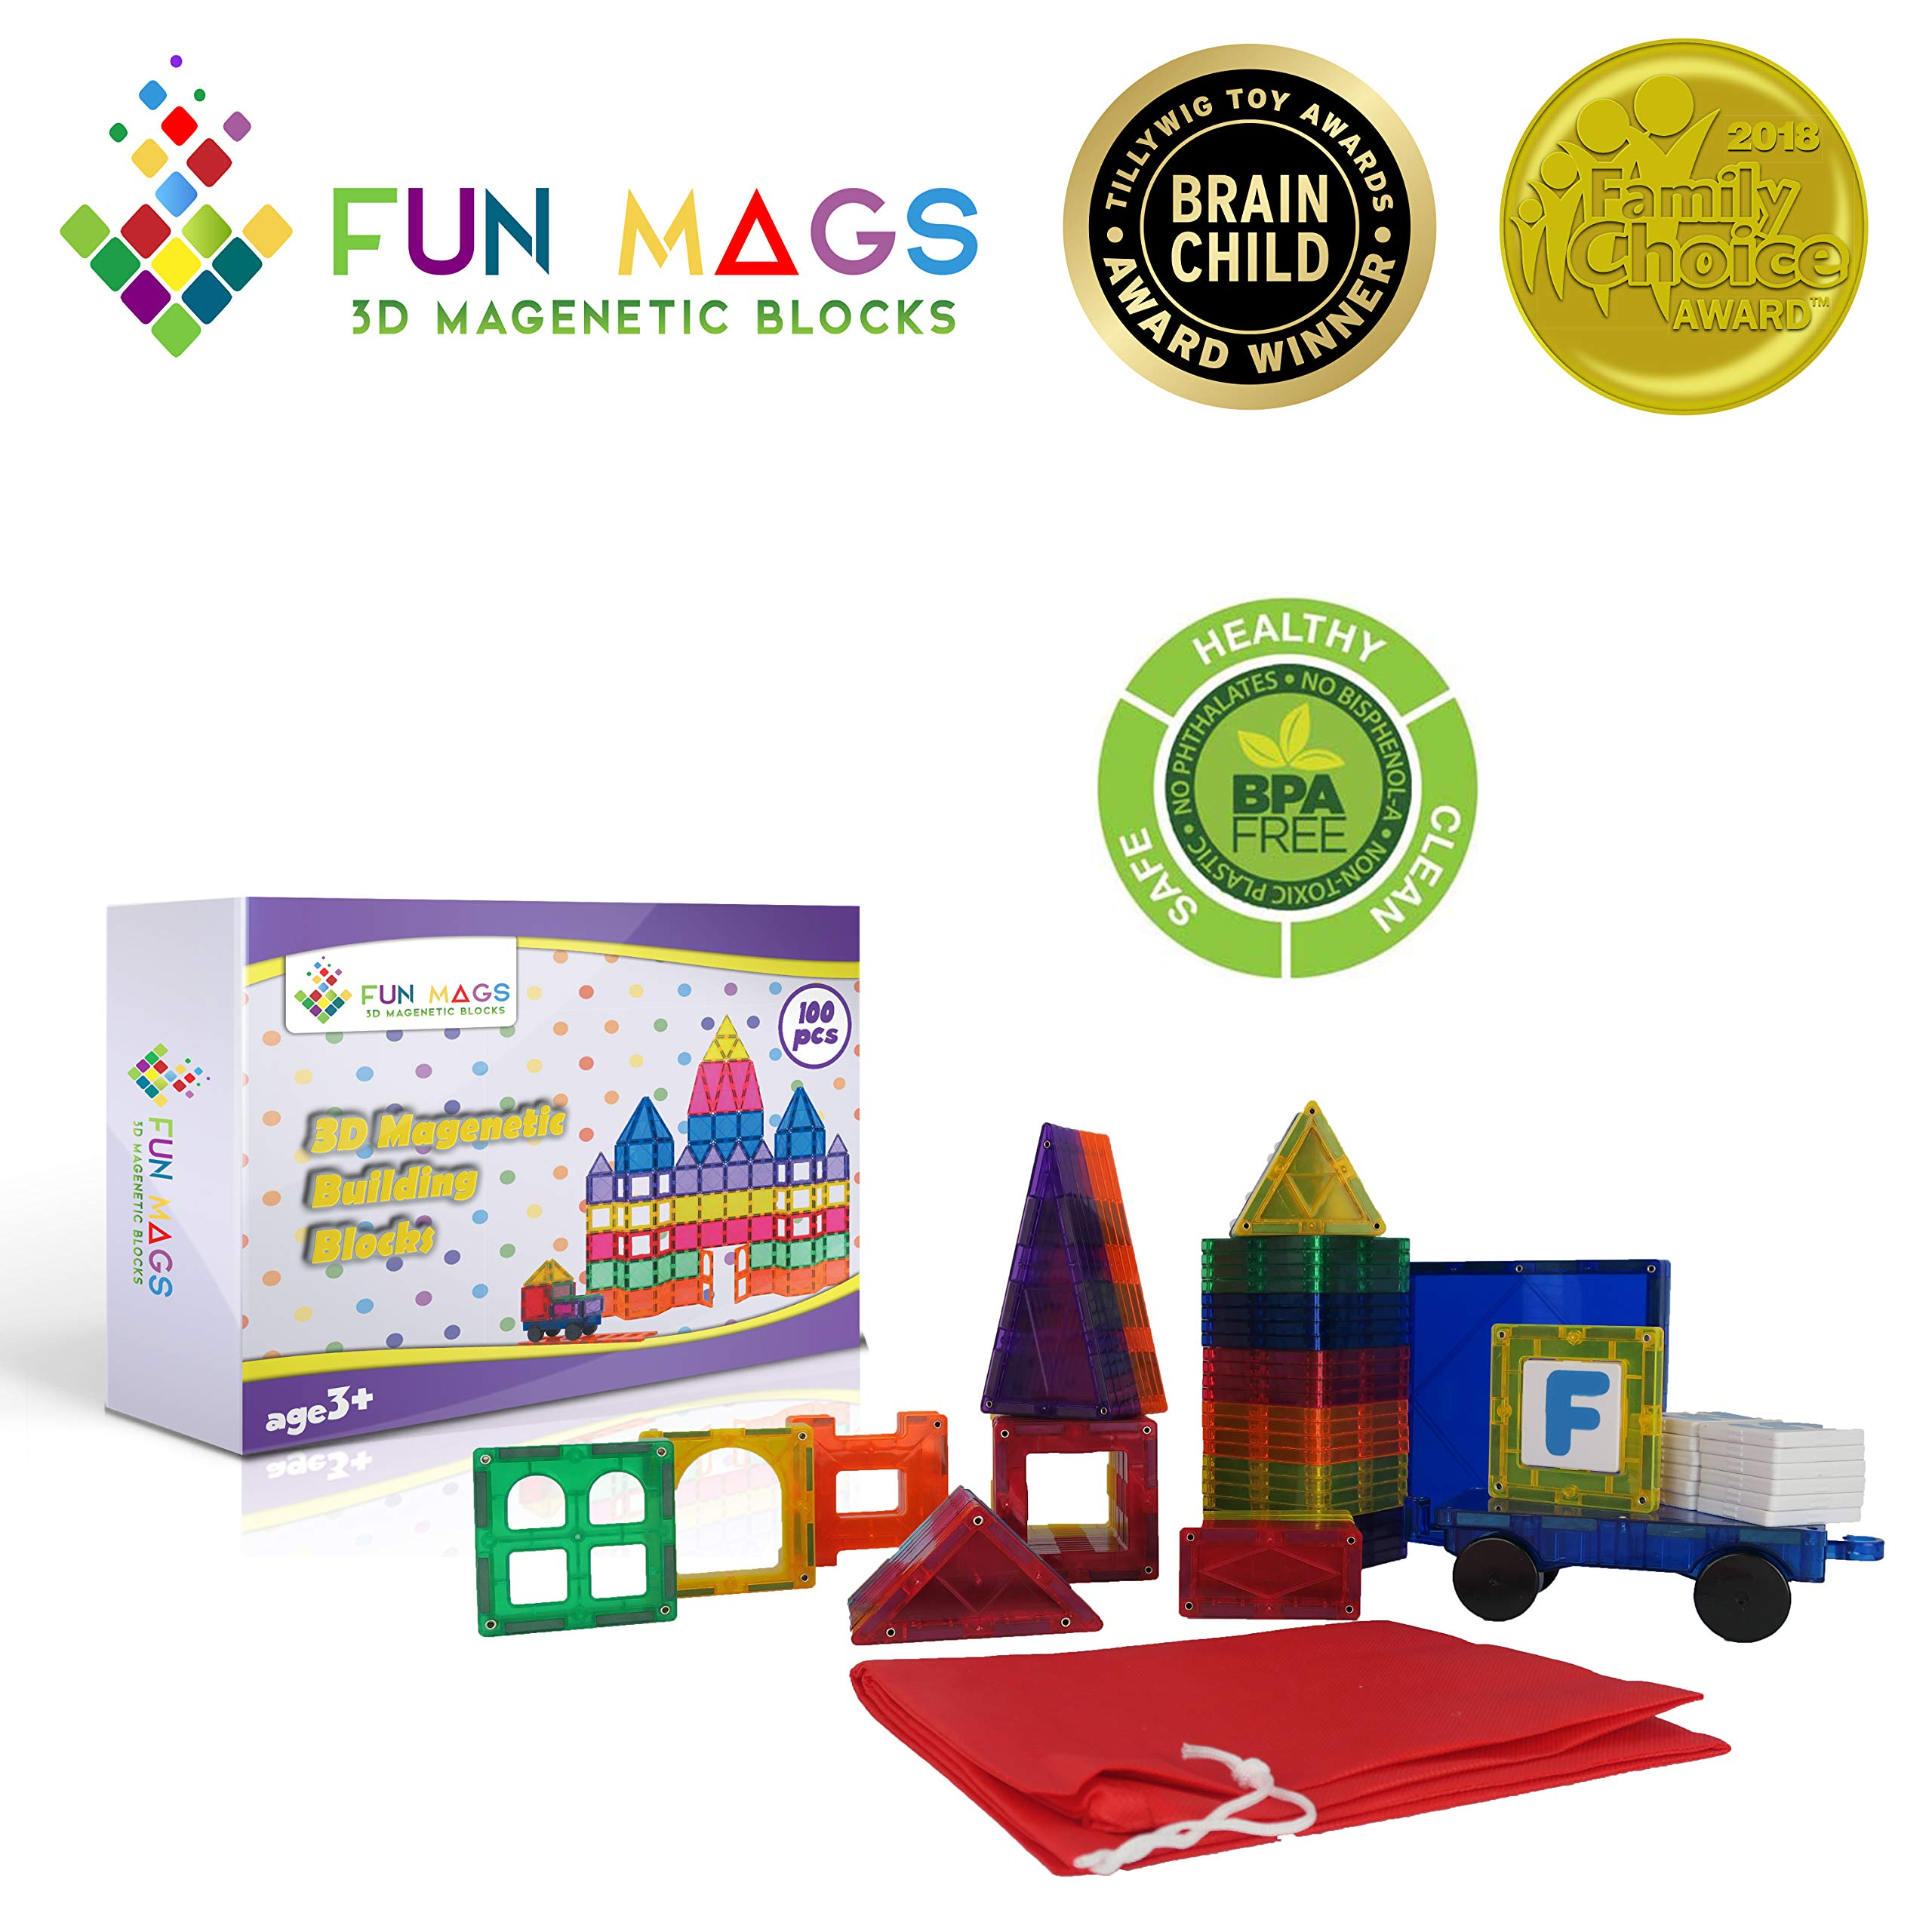 Fun Mags Magnetic Blocks 100-Piece Set 3D Magnetic Building Blocks, STEM Educational Magna Magnetic Tiles Magnet Toys for Kids, Toddlers by Lustien Toys (Image #7)